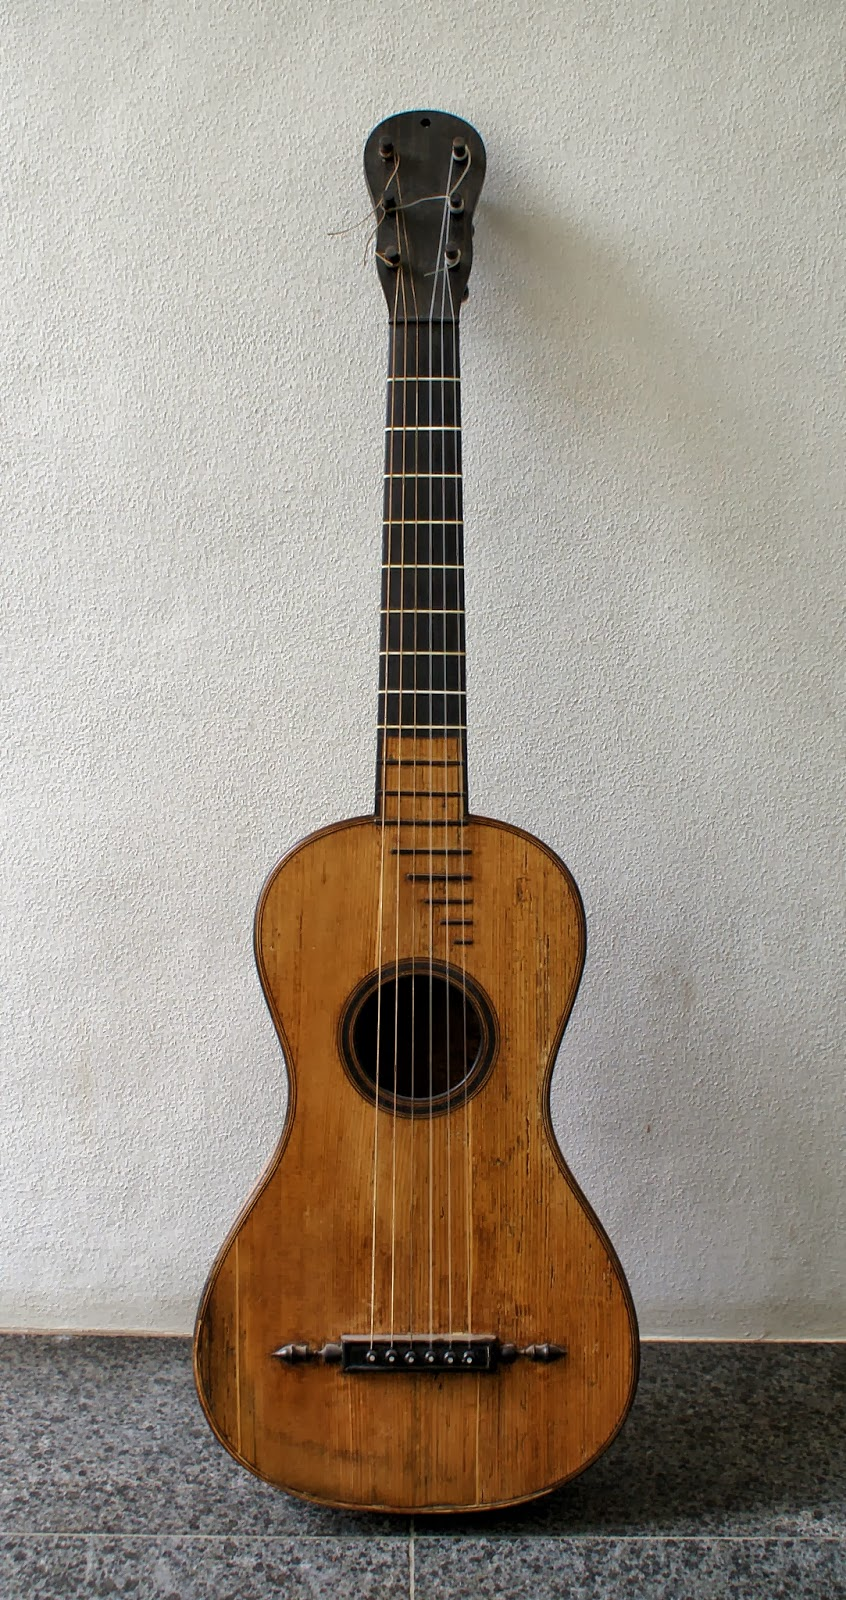 Romantic And Old Guitars Augustin Claudot Guitar 1810